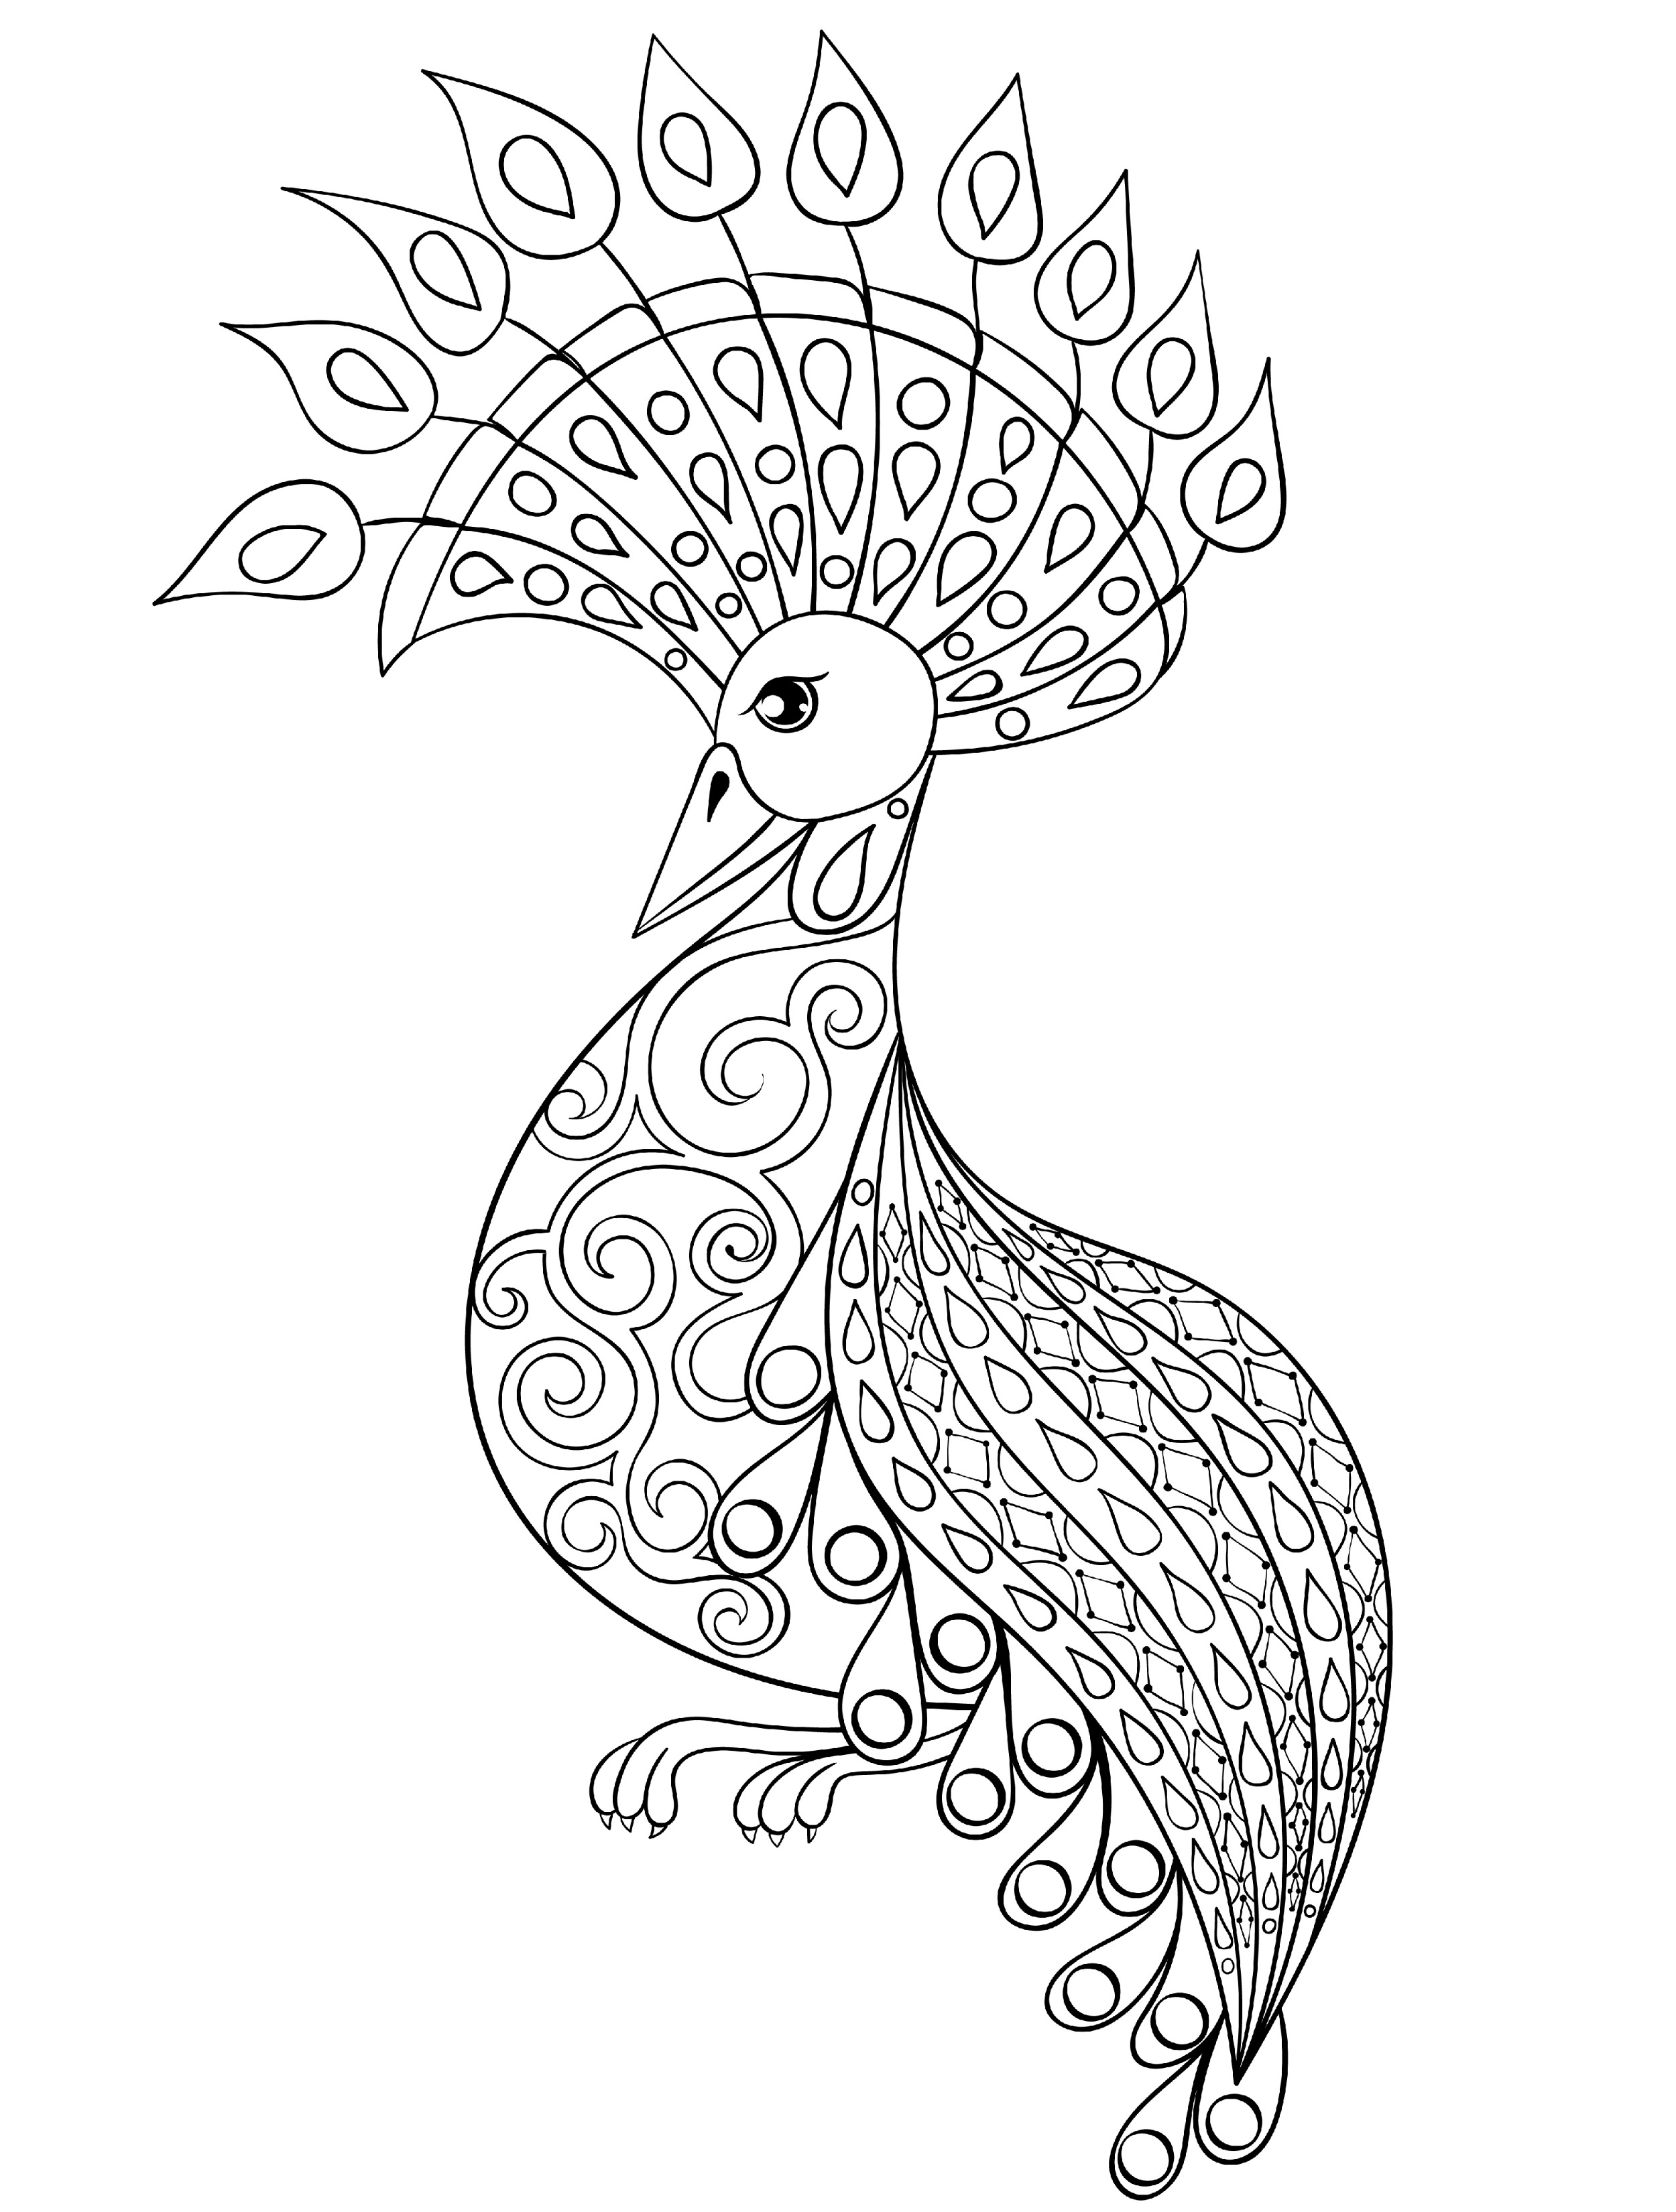 coloring outline image of peacock outline of a peacock drawing at getdrawings free download image coloring of peacock outline